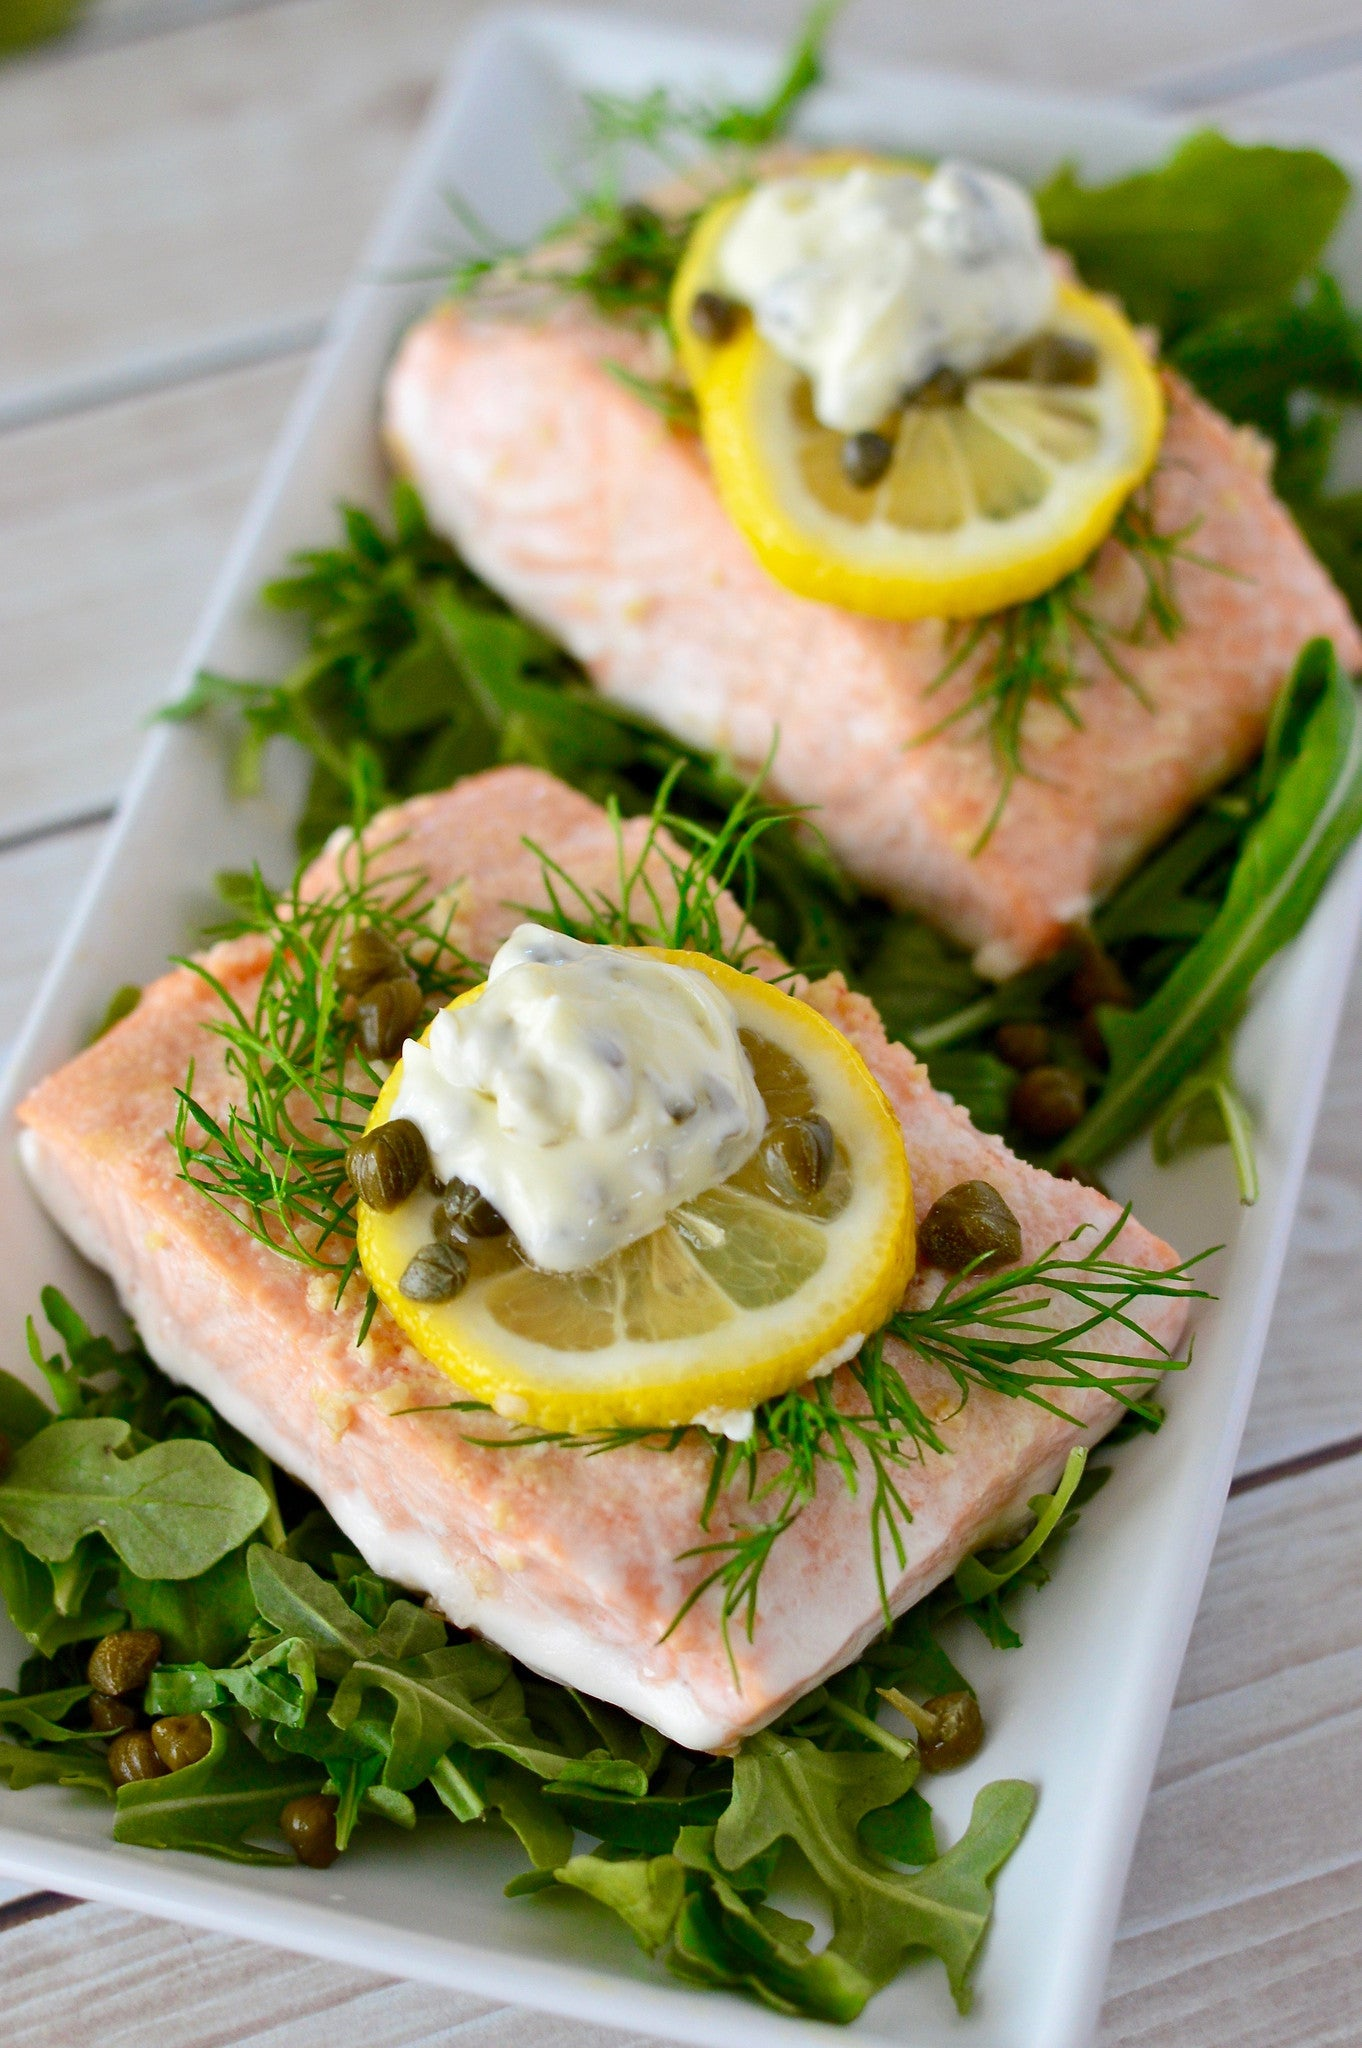 Lemon Dill Baked Salmon